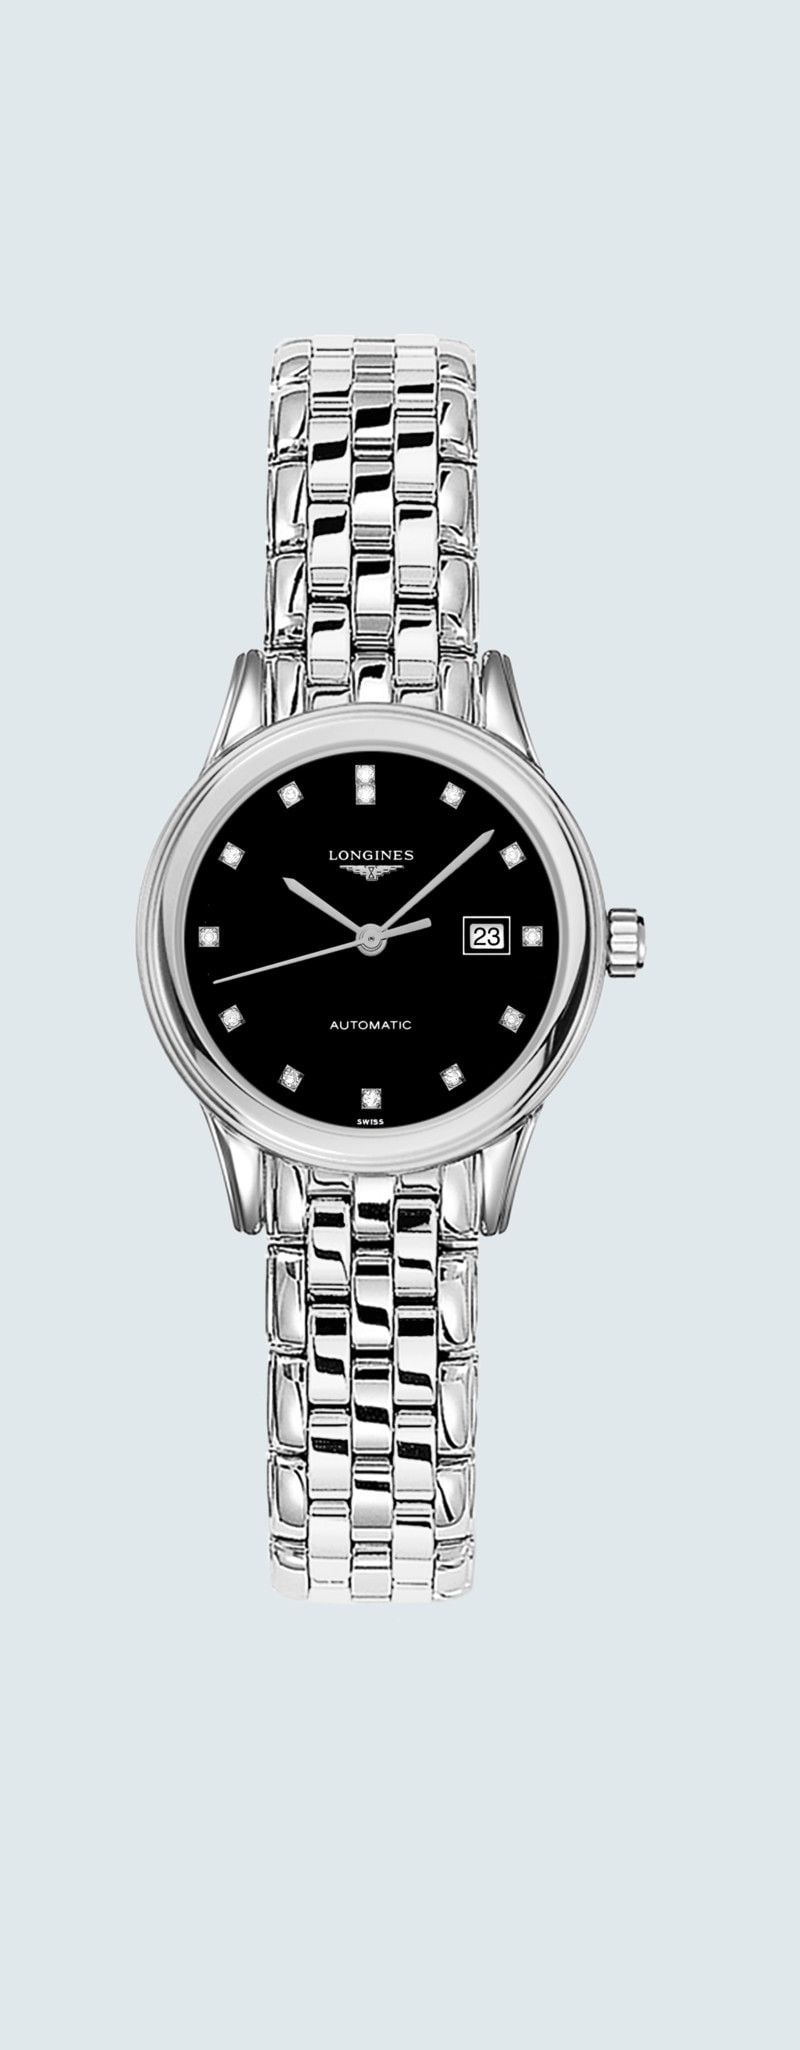 30.00 mm Stainless steel case with Black lacquered polished dial and Stainless steel strap - case z